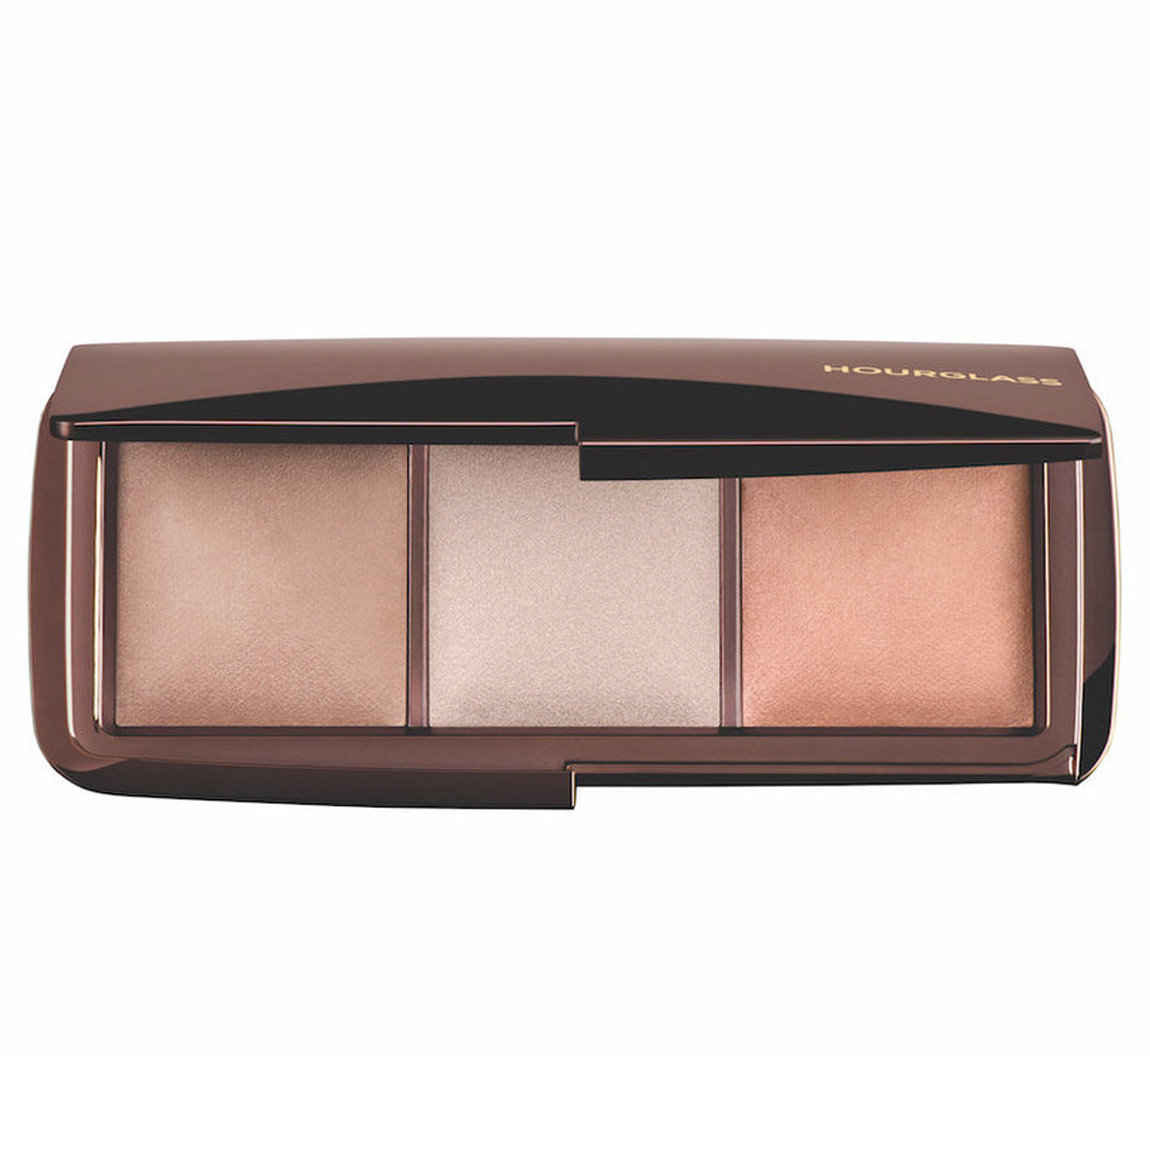 Hourglass Ambient Lighting Palette product swatch.